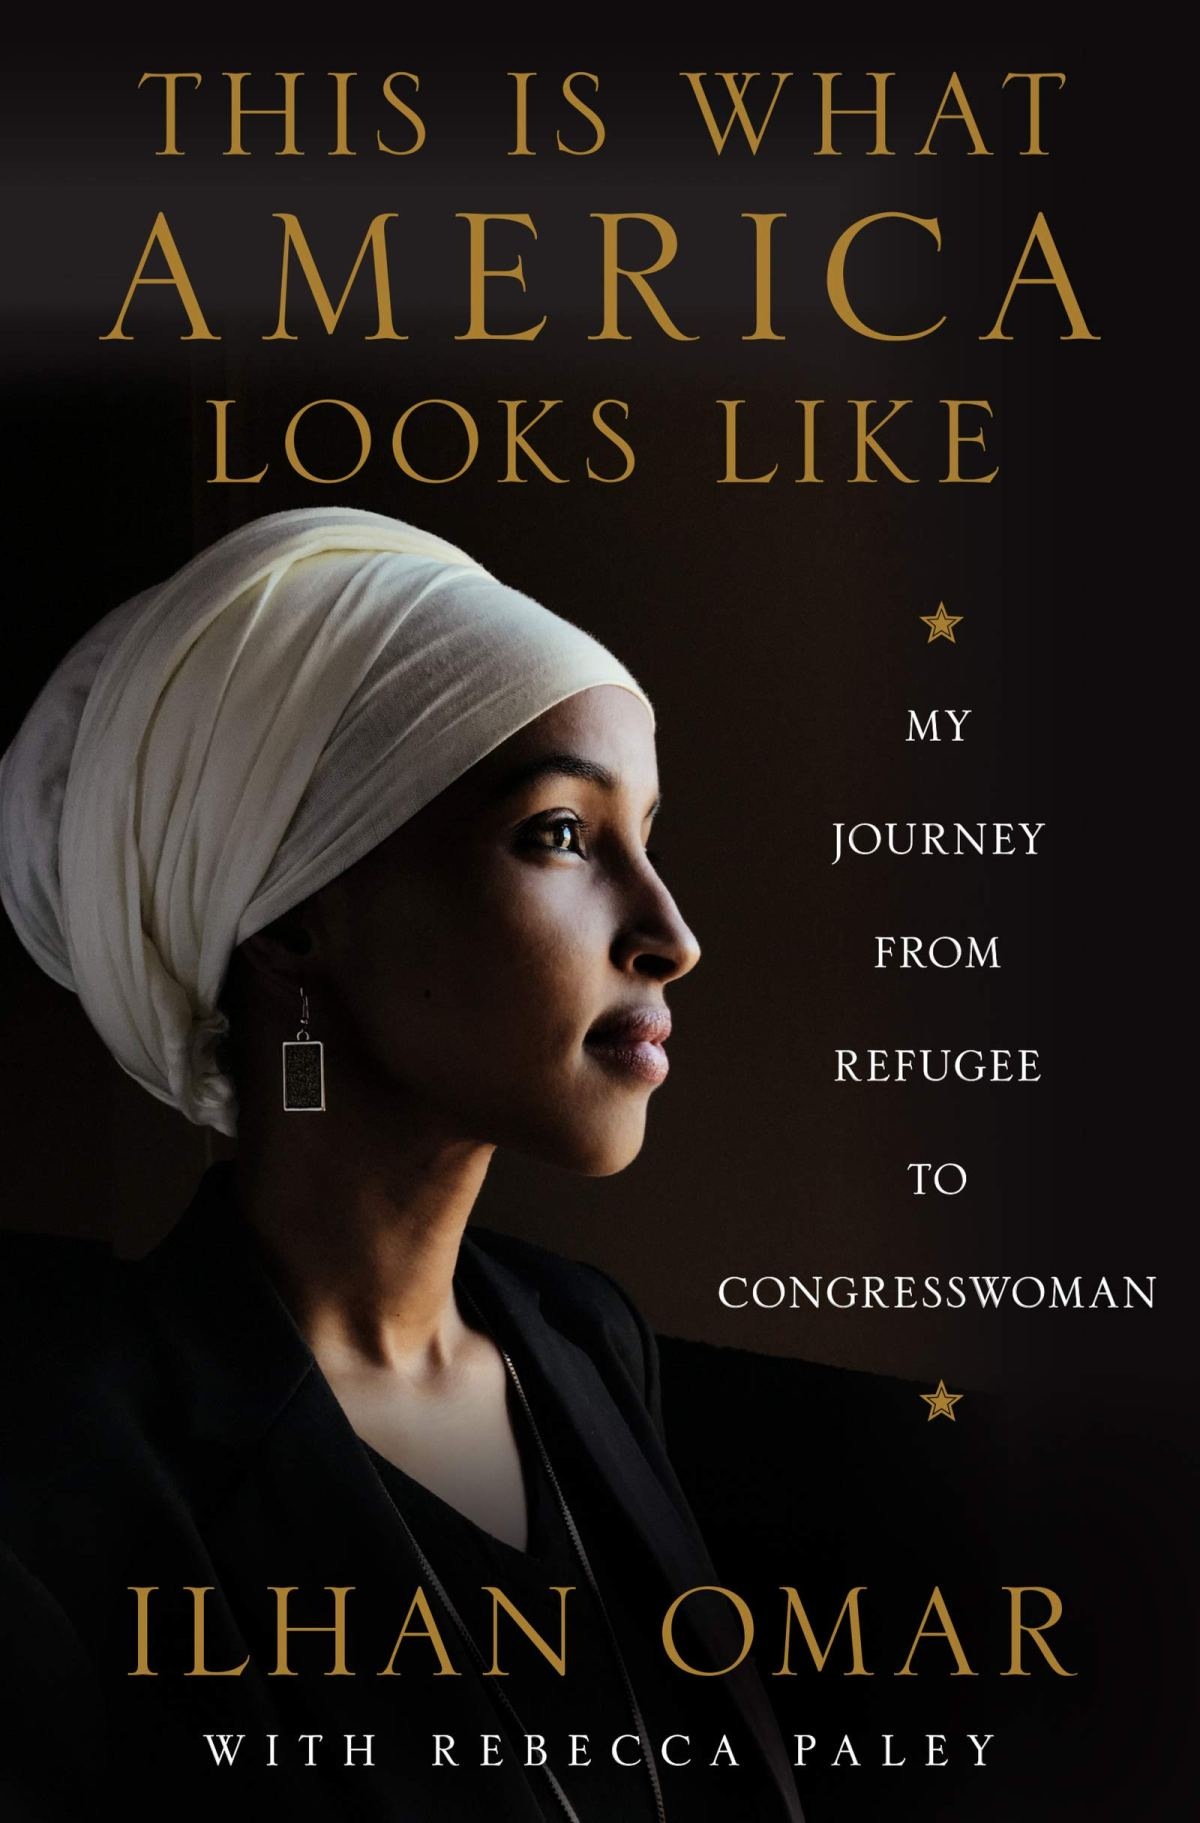 Ilhan Omar - This is What America Looks Like